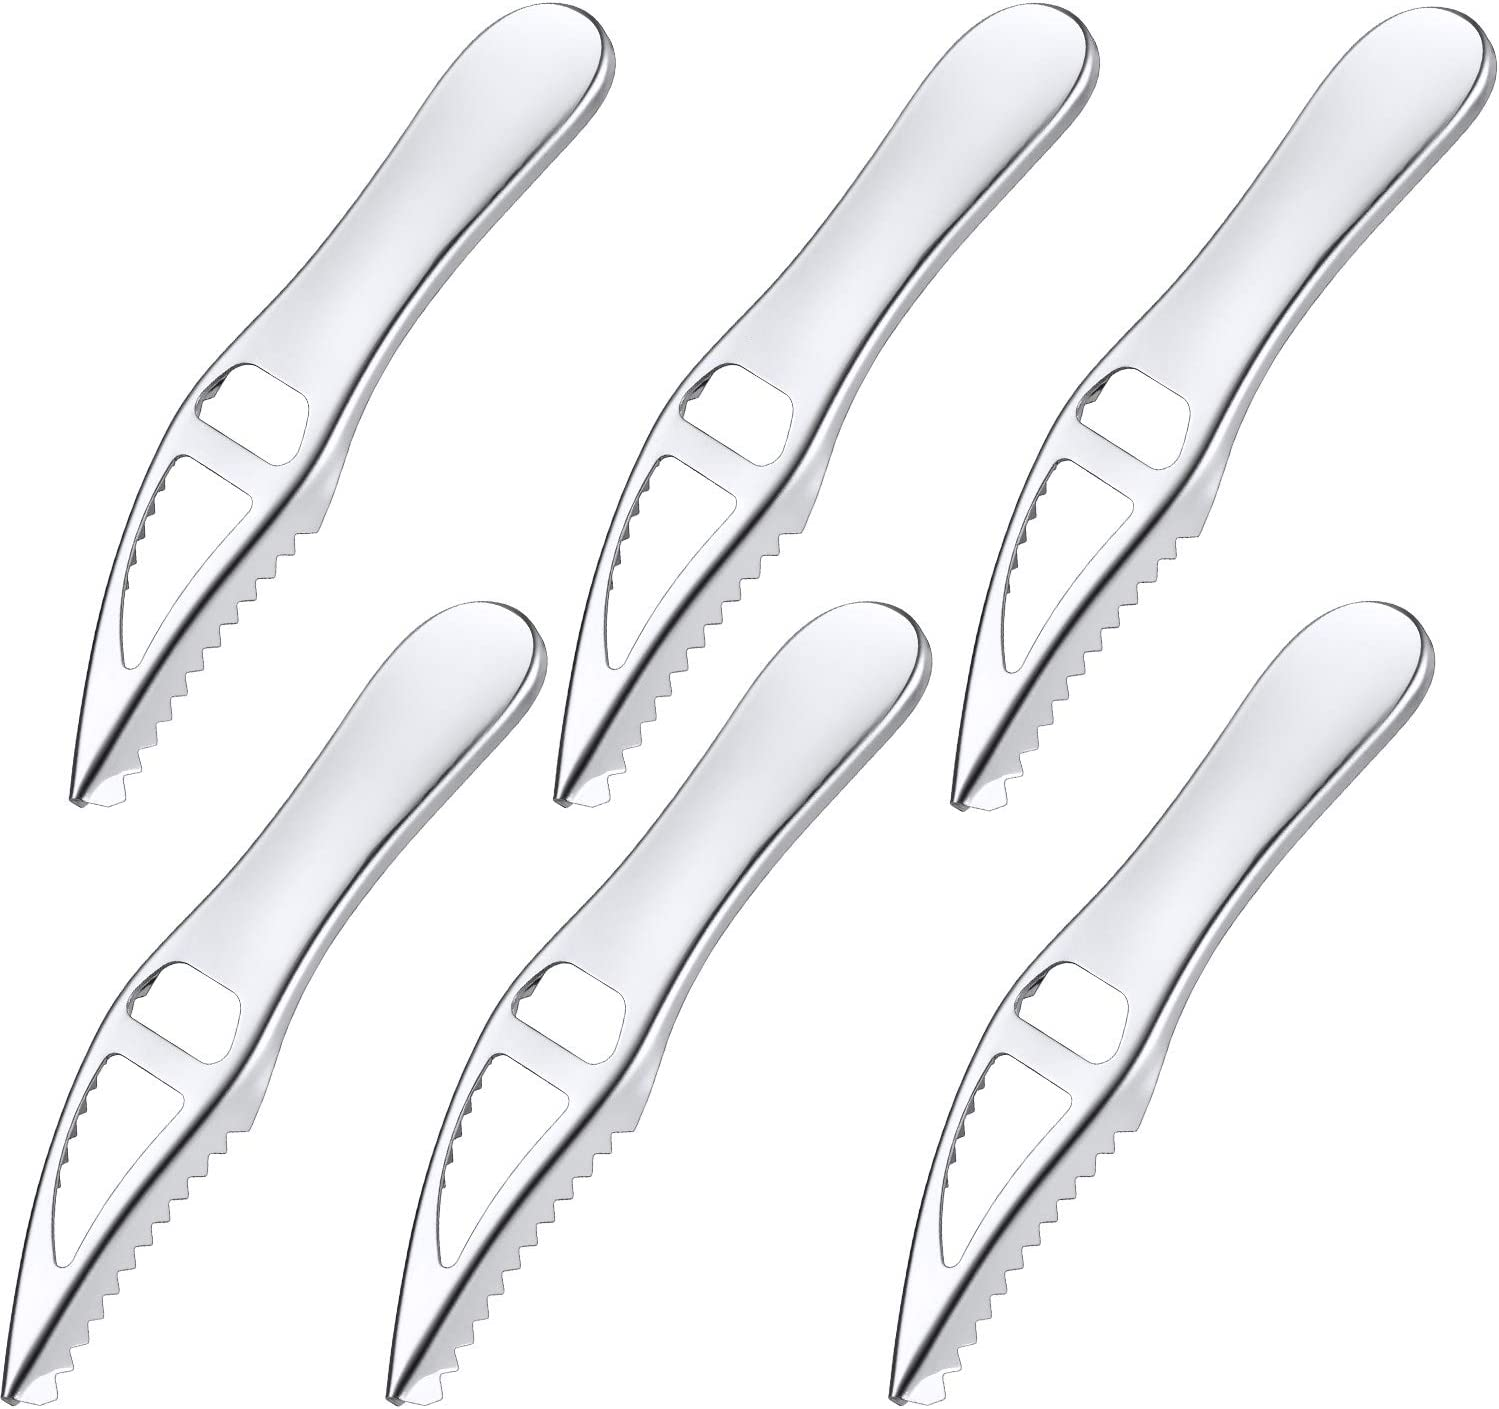 6 Pieces Fish Scaler Remover Stainless Steel Sawtooth Scarper Kitchen Fish Scaler Brush with Non-slip Handle for Home Kitchen Restaurant, Fish Scales Skin Removing Peeling